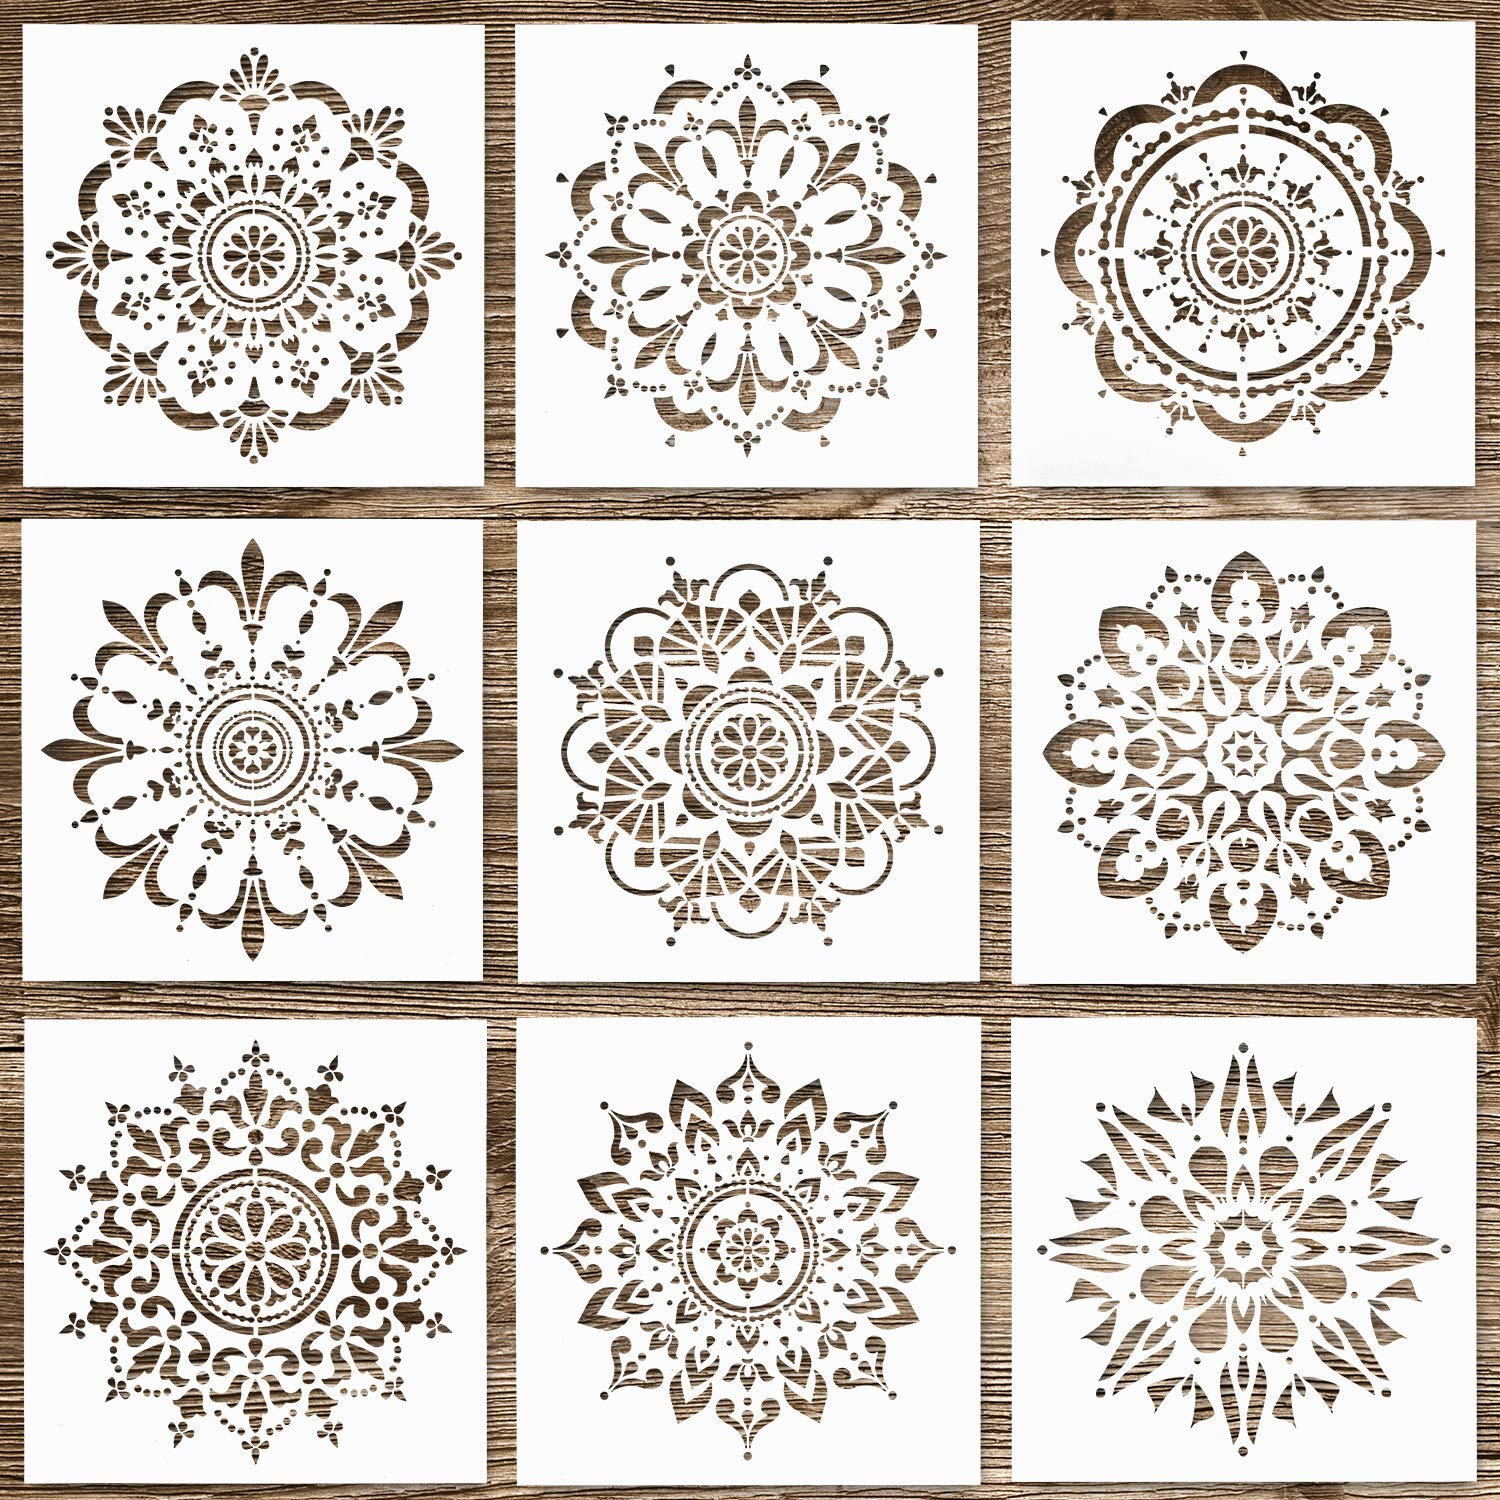 Whaline 9 Pack Reusable Mandala Stencils Tiles Template Set Laser Cut Painting Template Stencils Tool for Airbrush, Furniture Floor Tiles, Walls Art and Stone Rock Painting